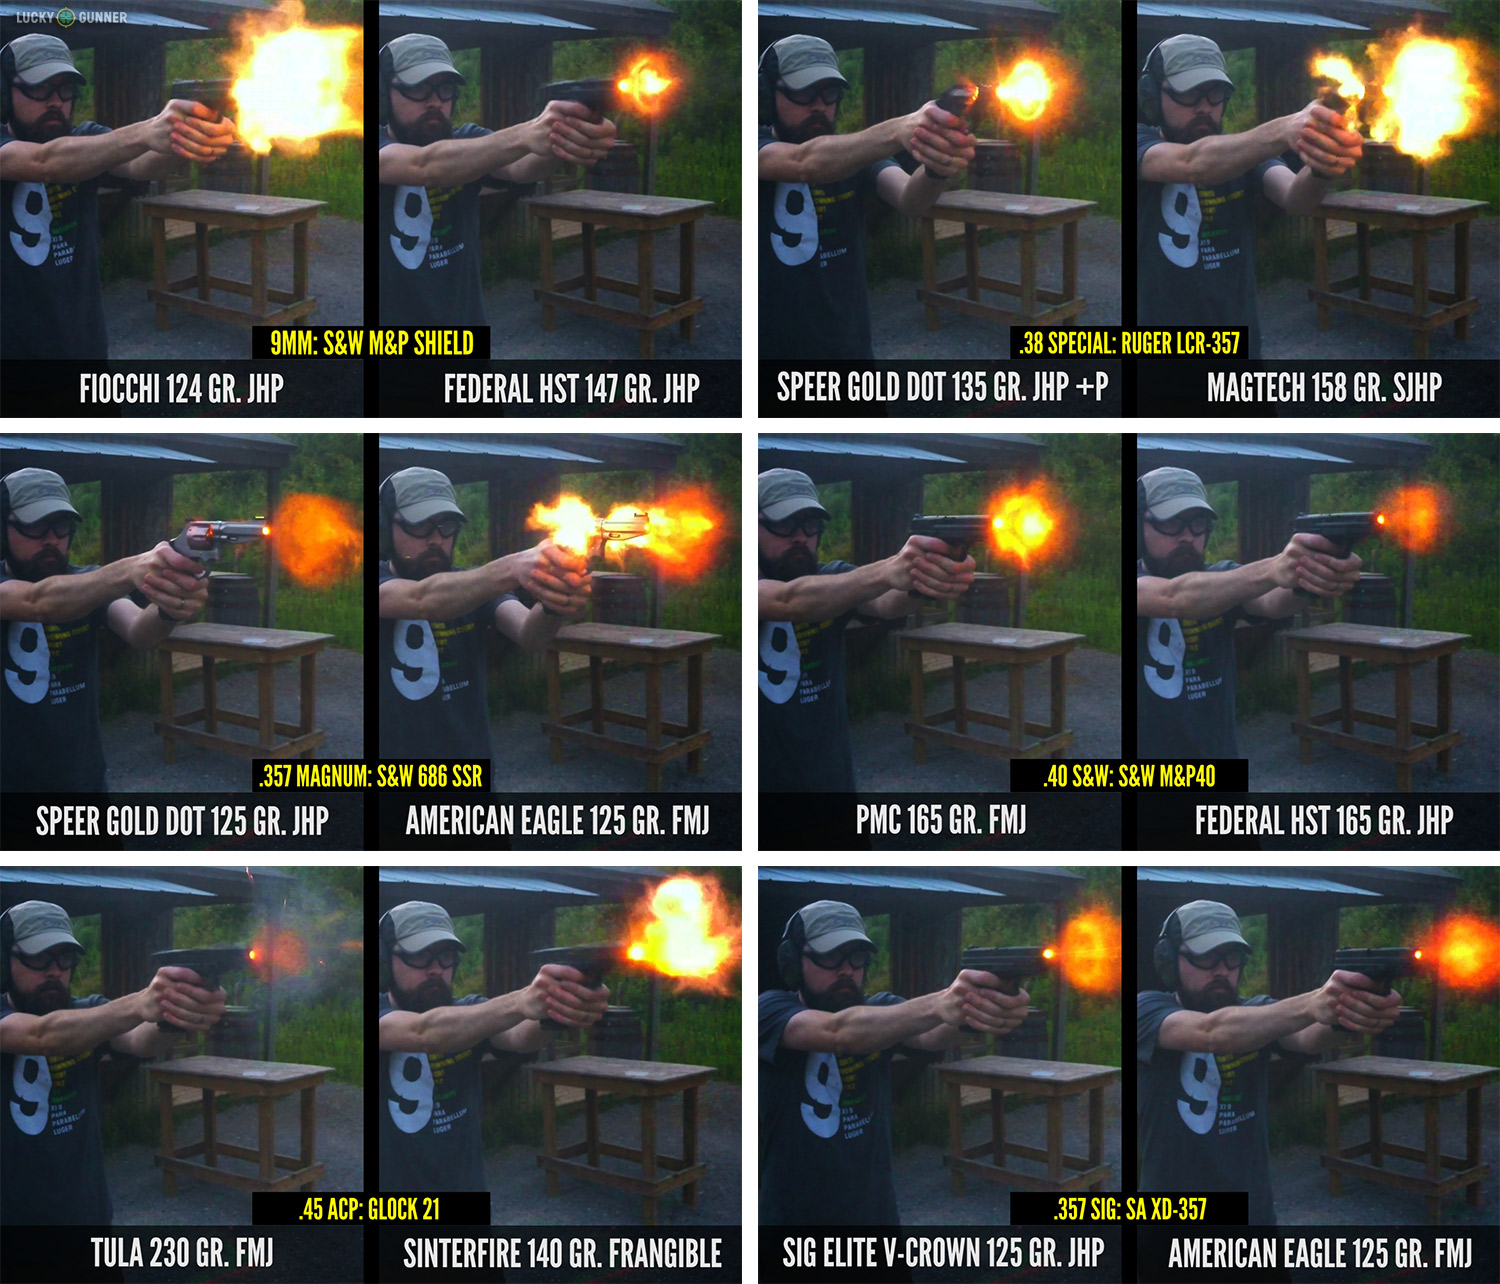 Muzzle Flash Comparison